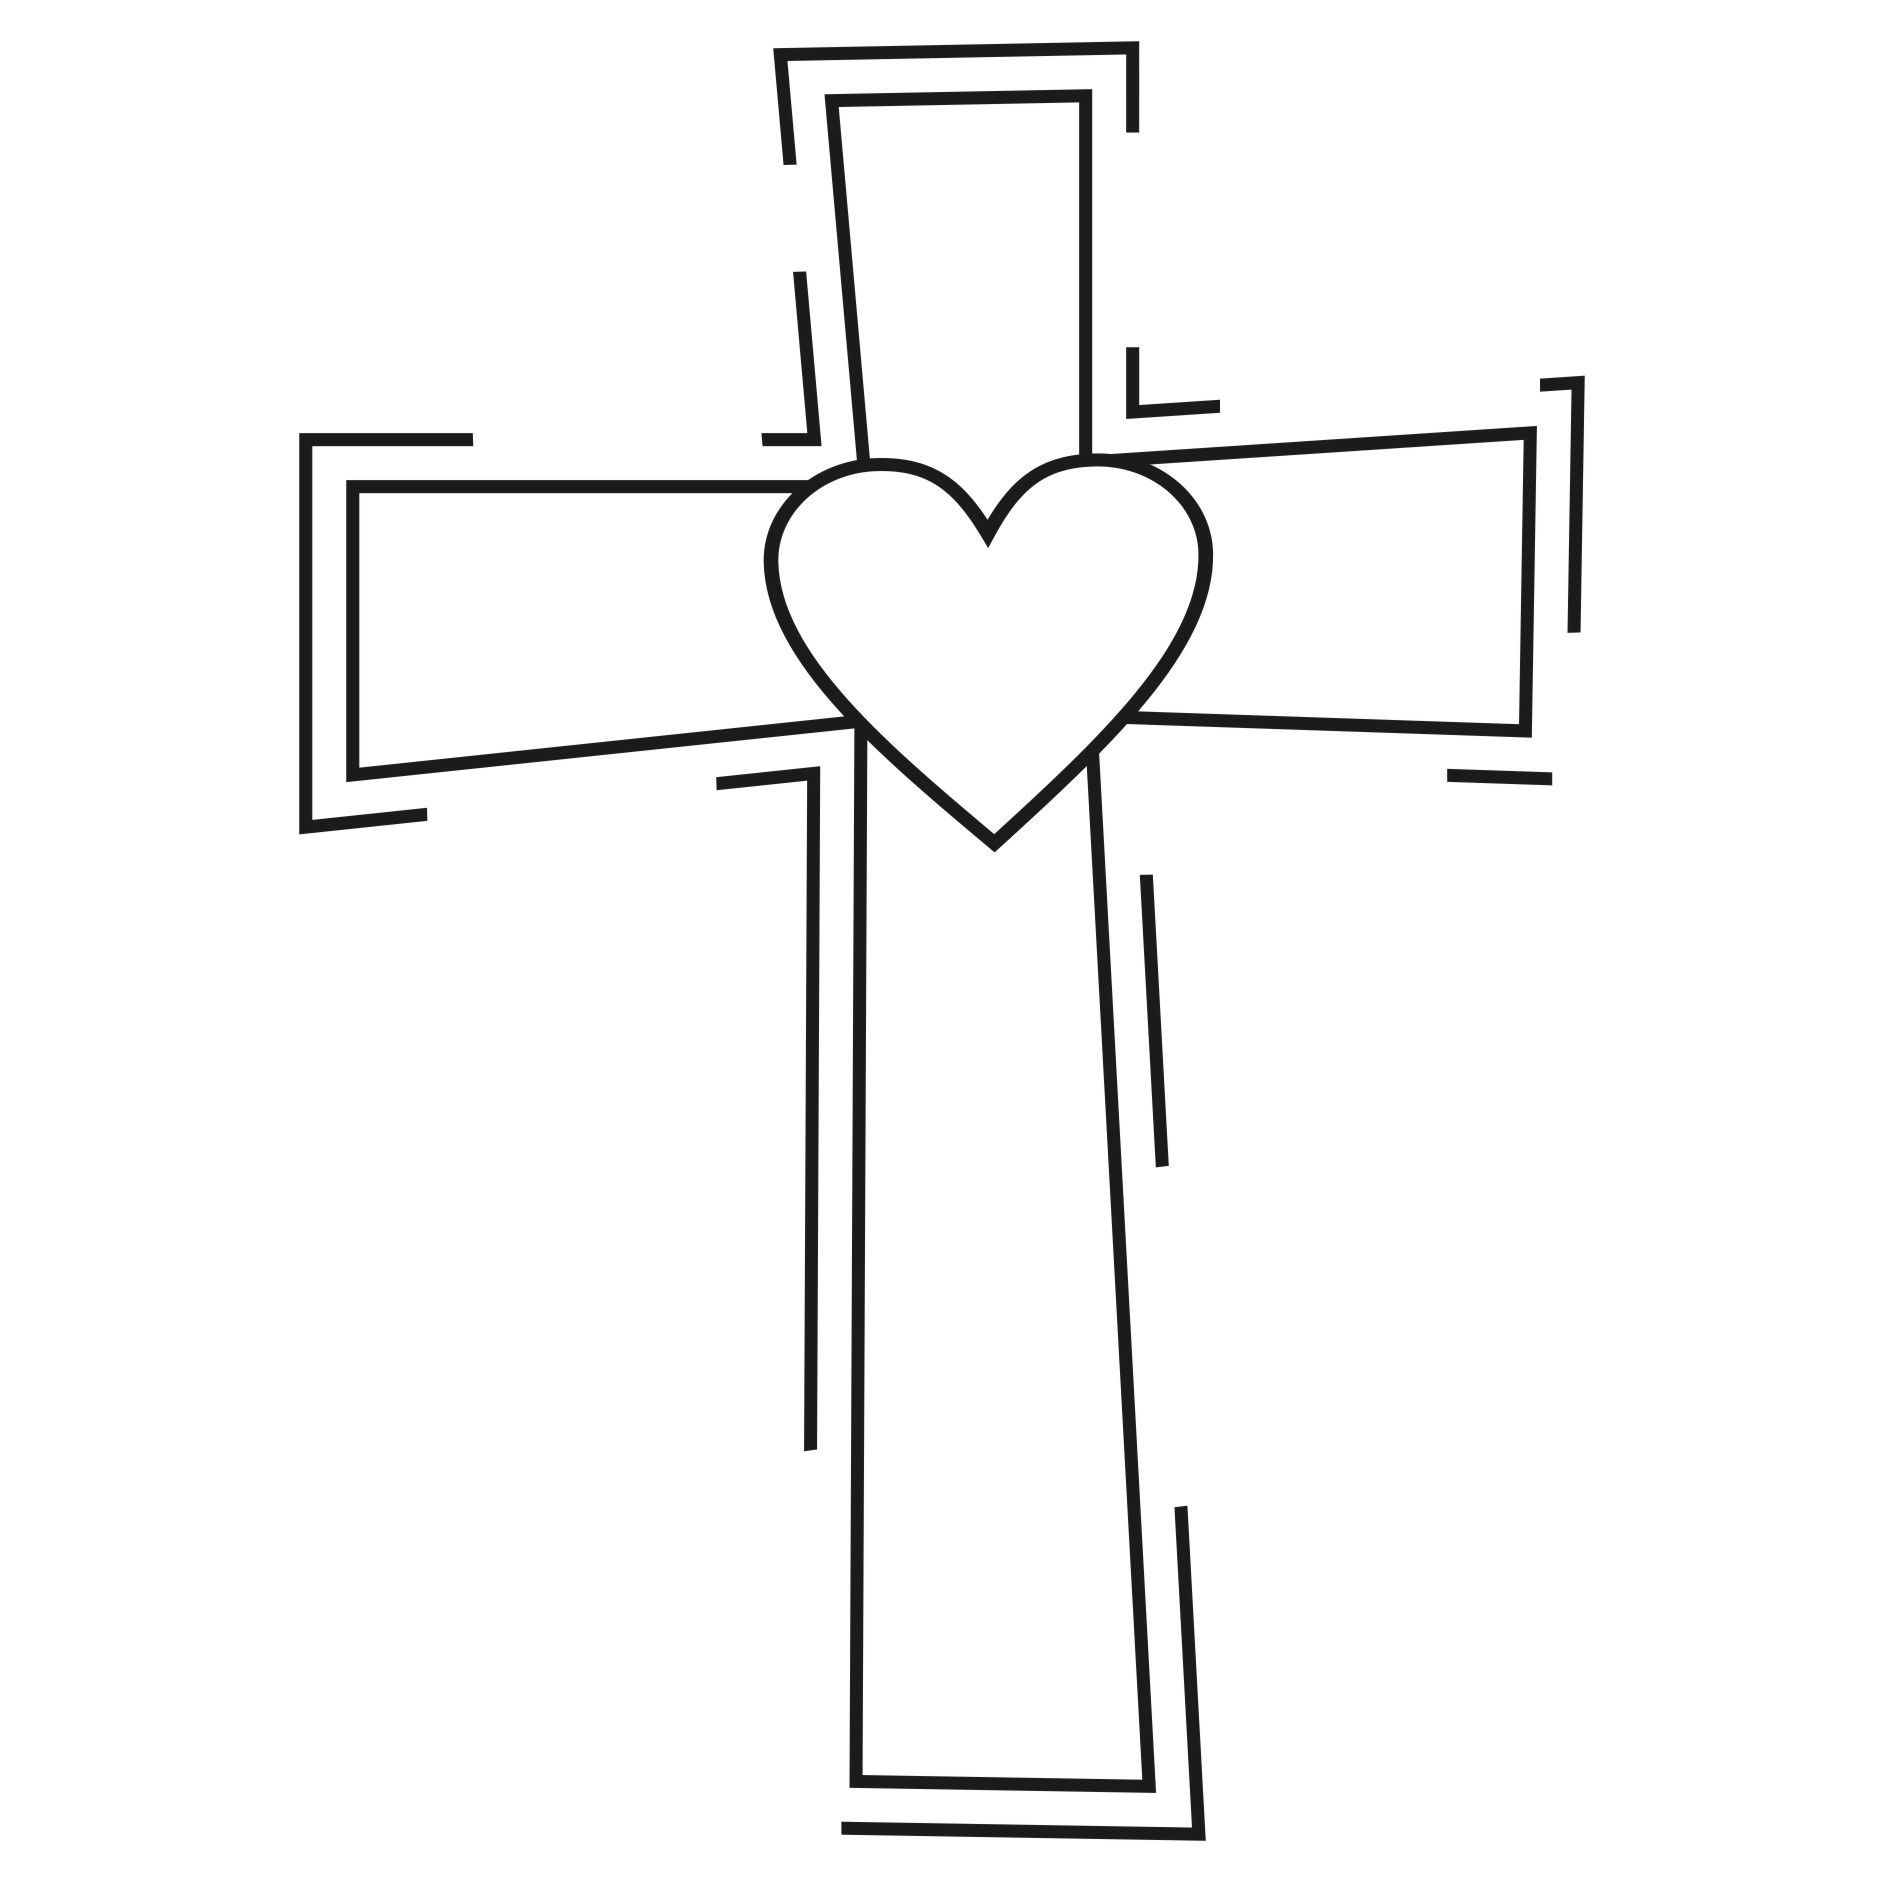 Heart and cross black and white clipart clip art free stock Clipart Design Ideas Clipart Religious Heart Cross ... clip art free stock